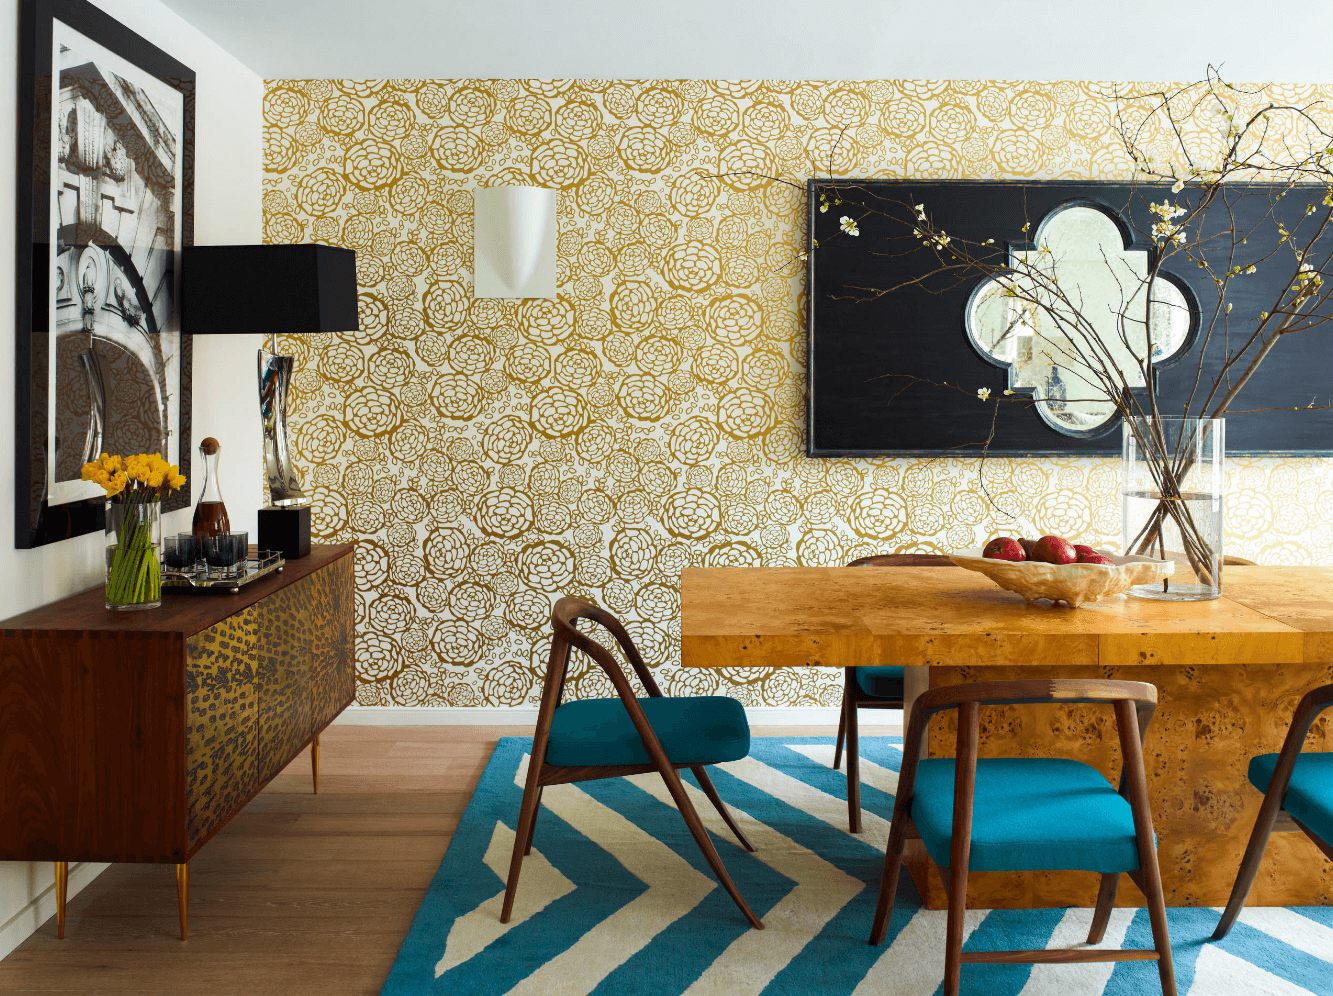 28 Stunning Wallpaper Ideas Your Home Needs Freshome Com